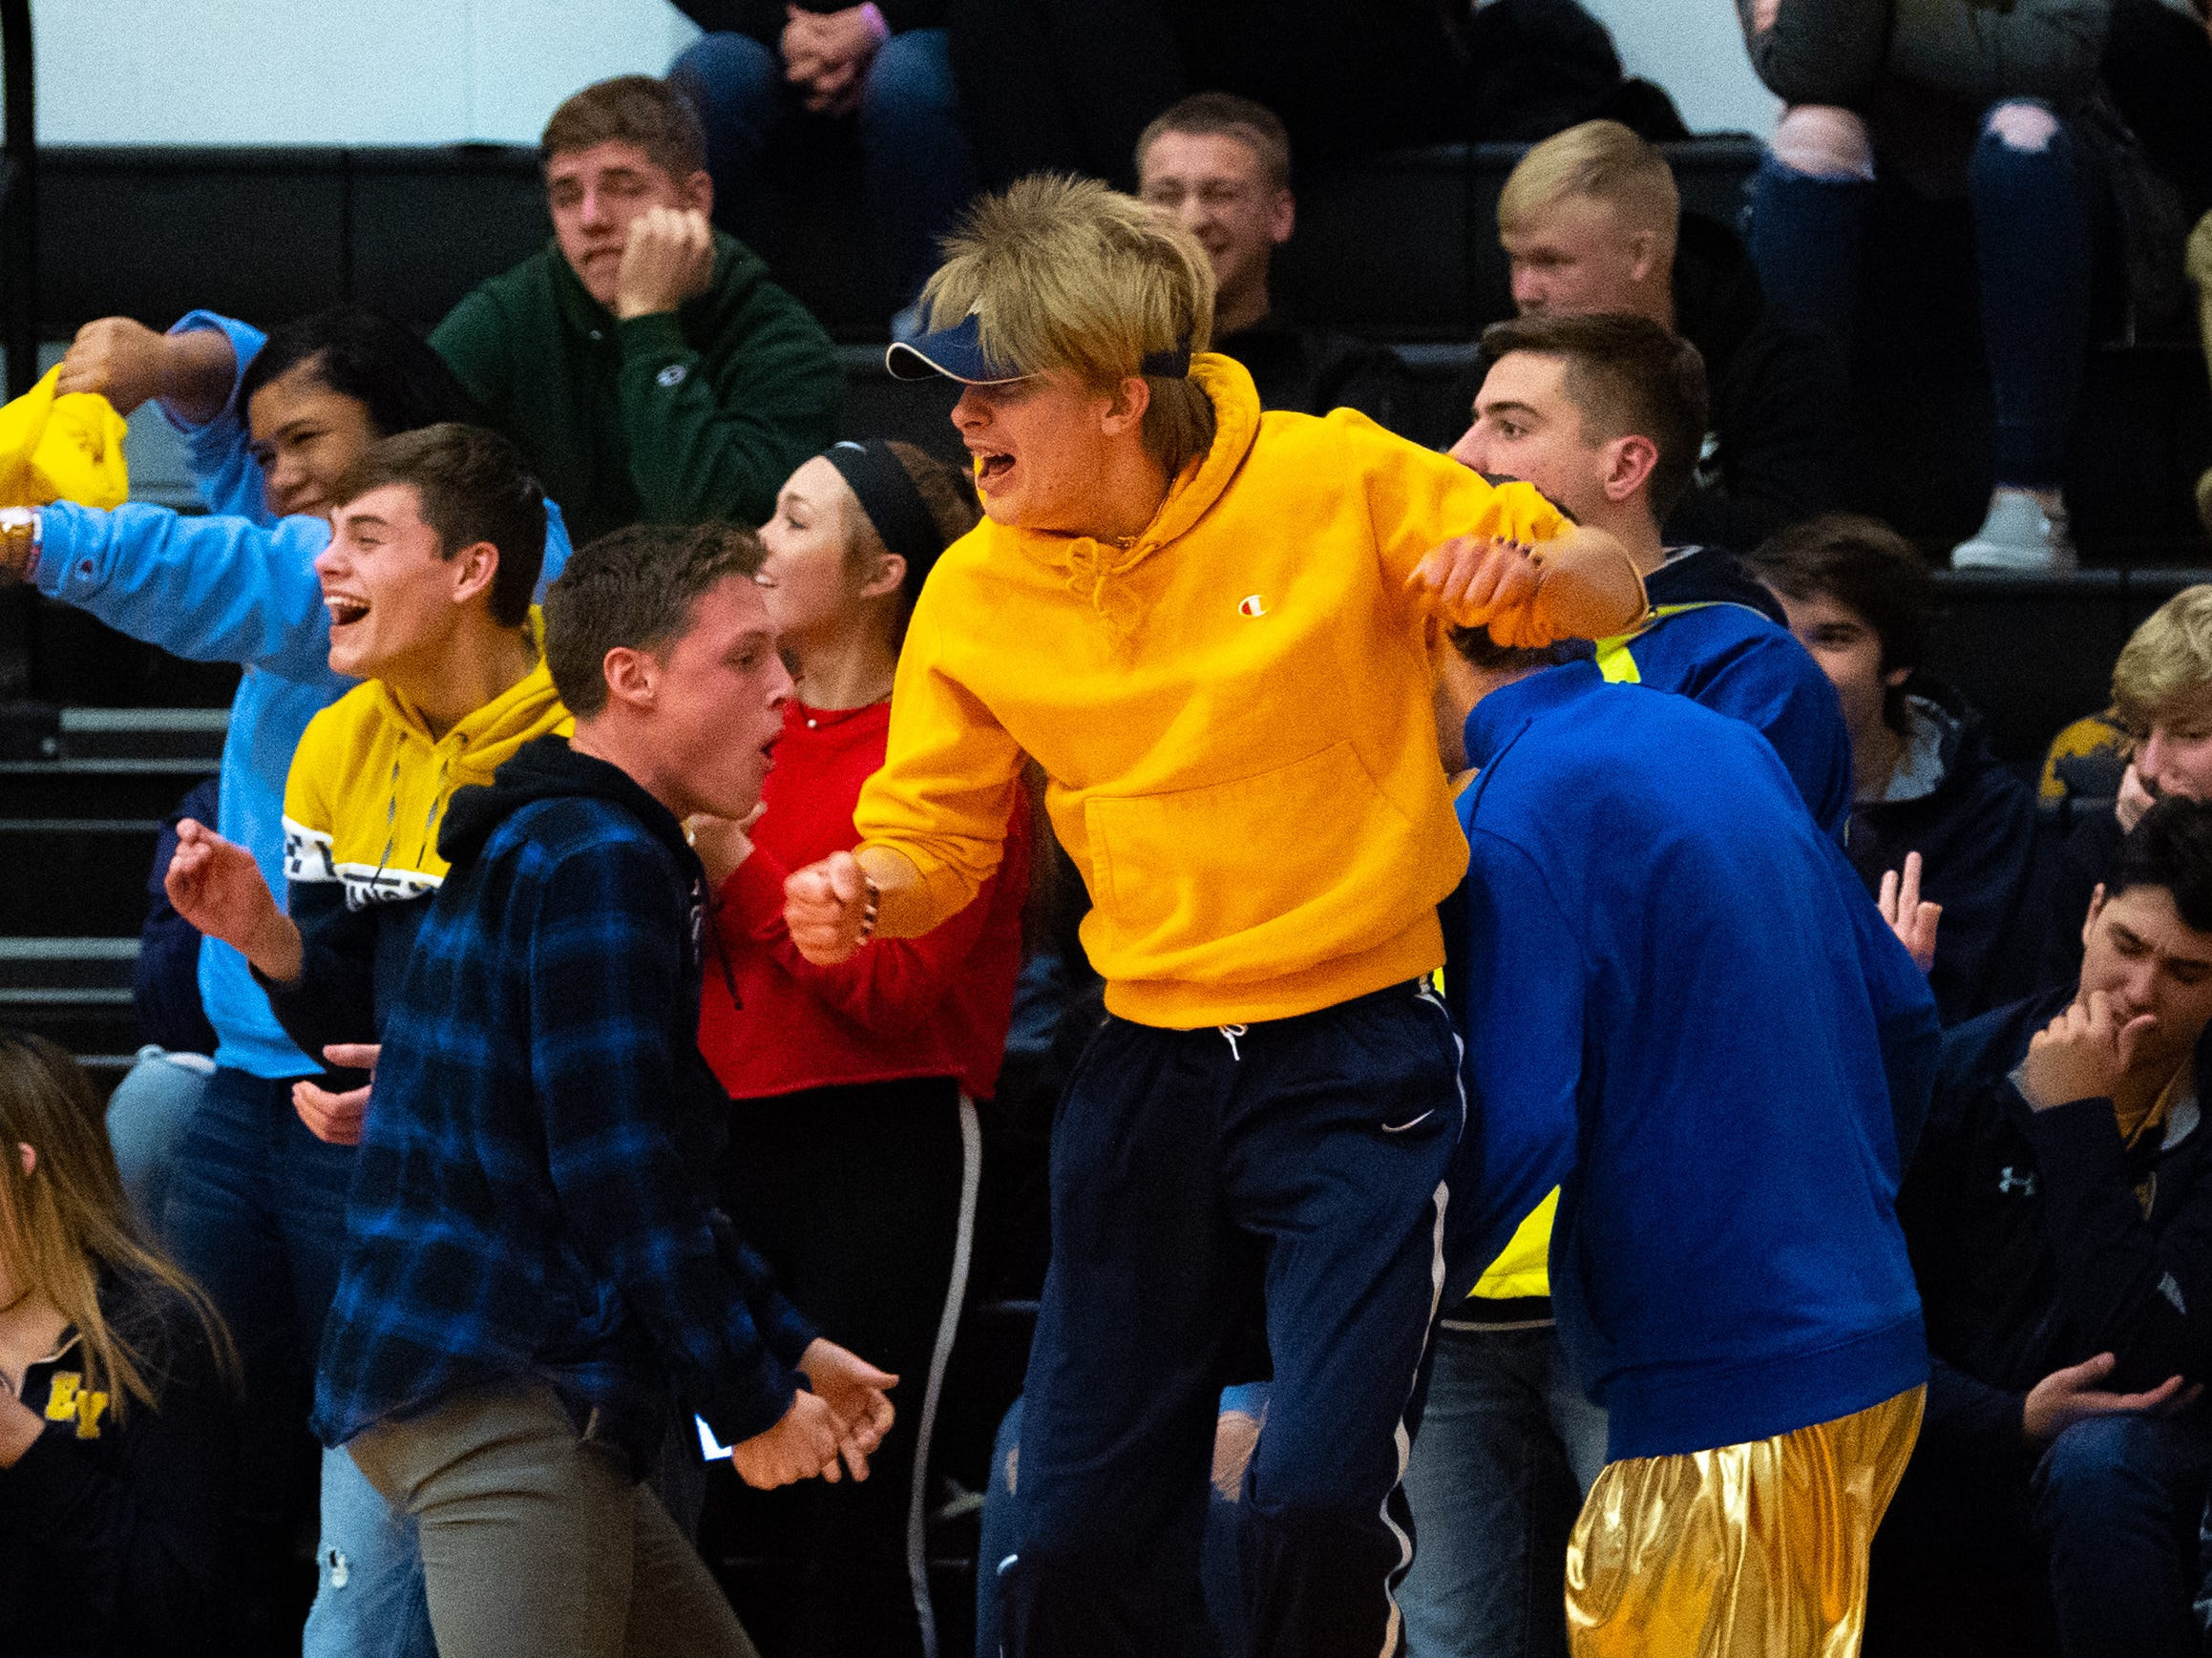 Photos: 2018-19 basketball student sections